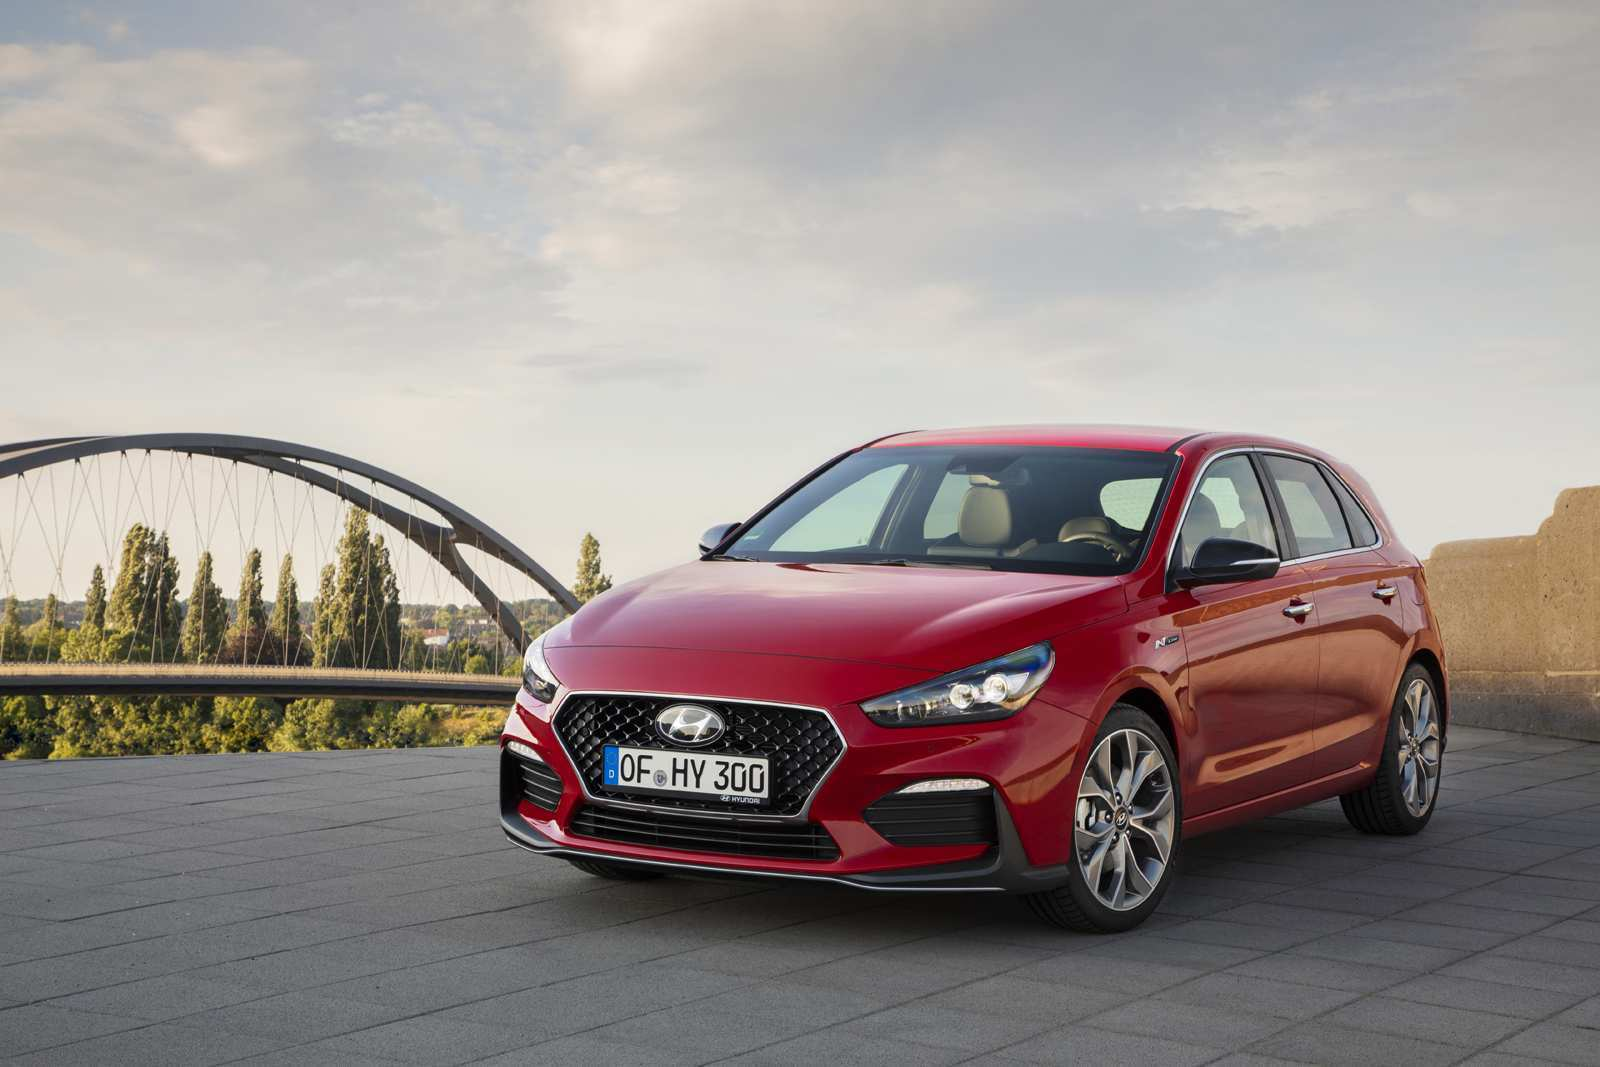 74 Best Review 2019 Hyundai Elantra Gt Exterior and Interior for 2019 Hyundai Elantra Gt